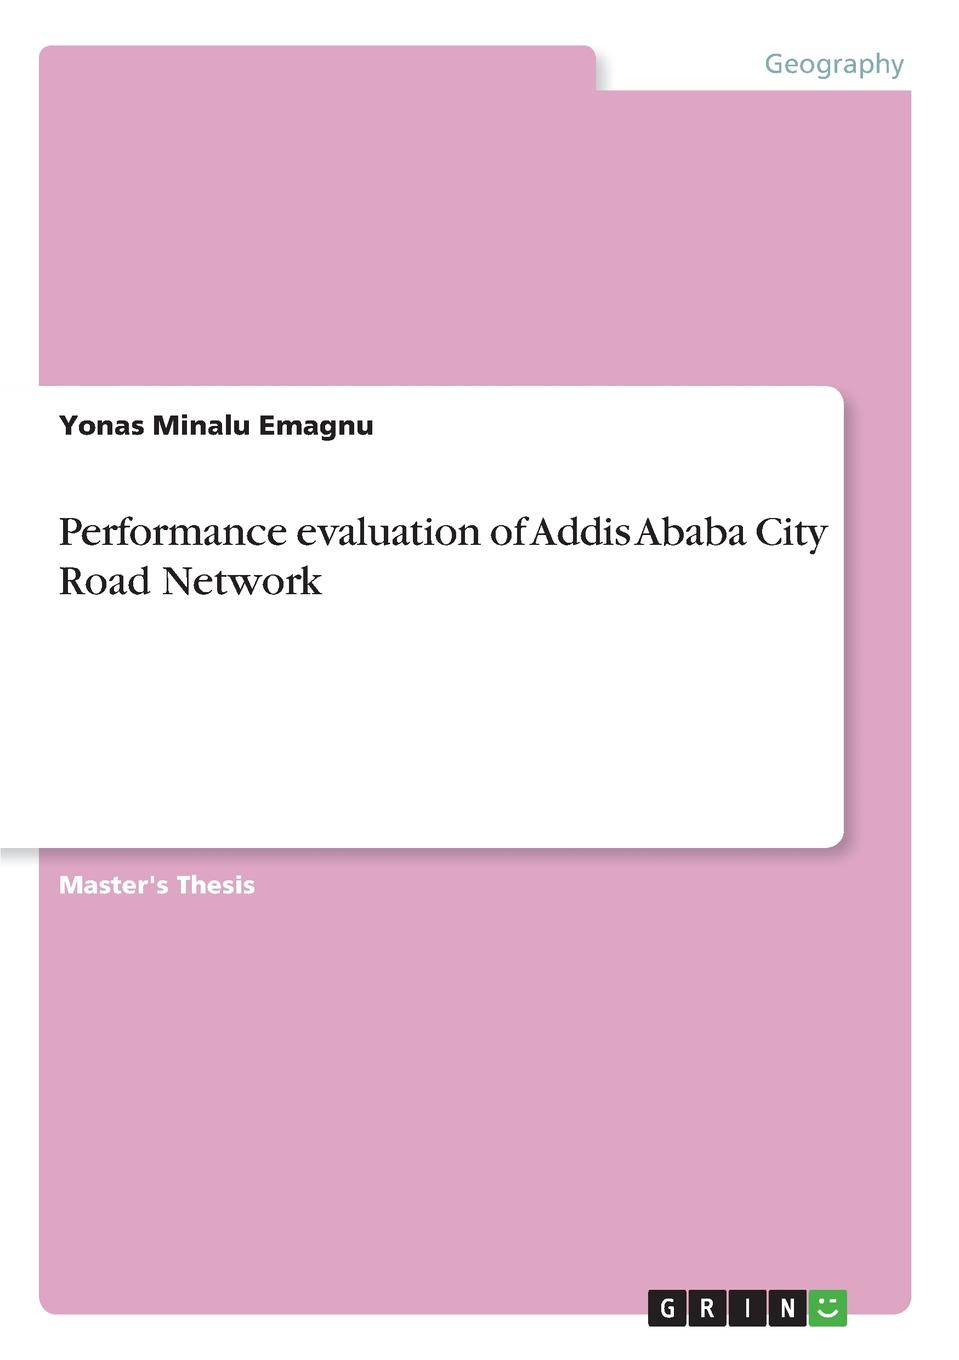 Yonas Minalu Emagnu Performance evaluation of Addis Ababa City Road Network planning and evaluates performance of radio network